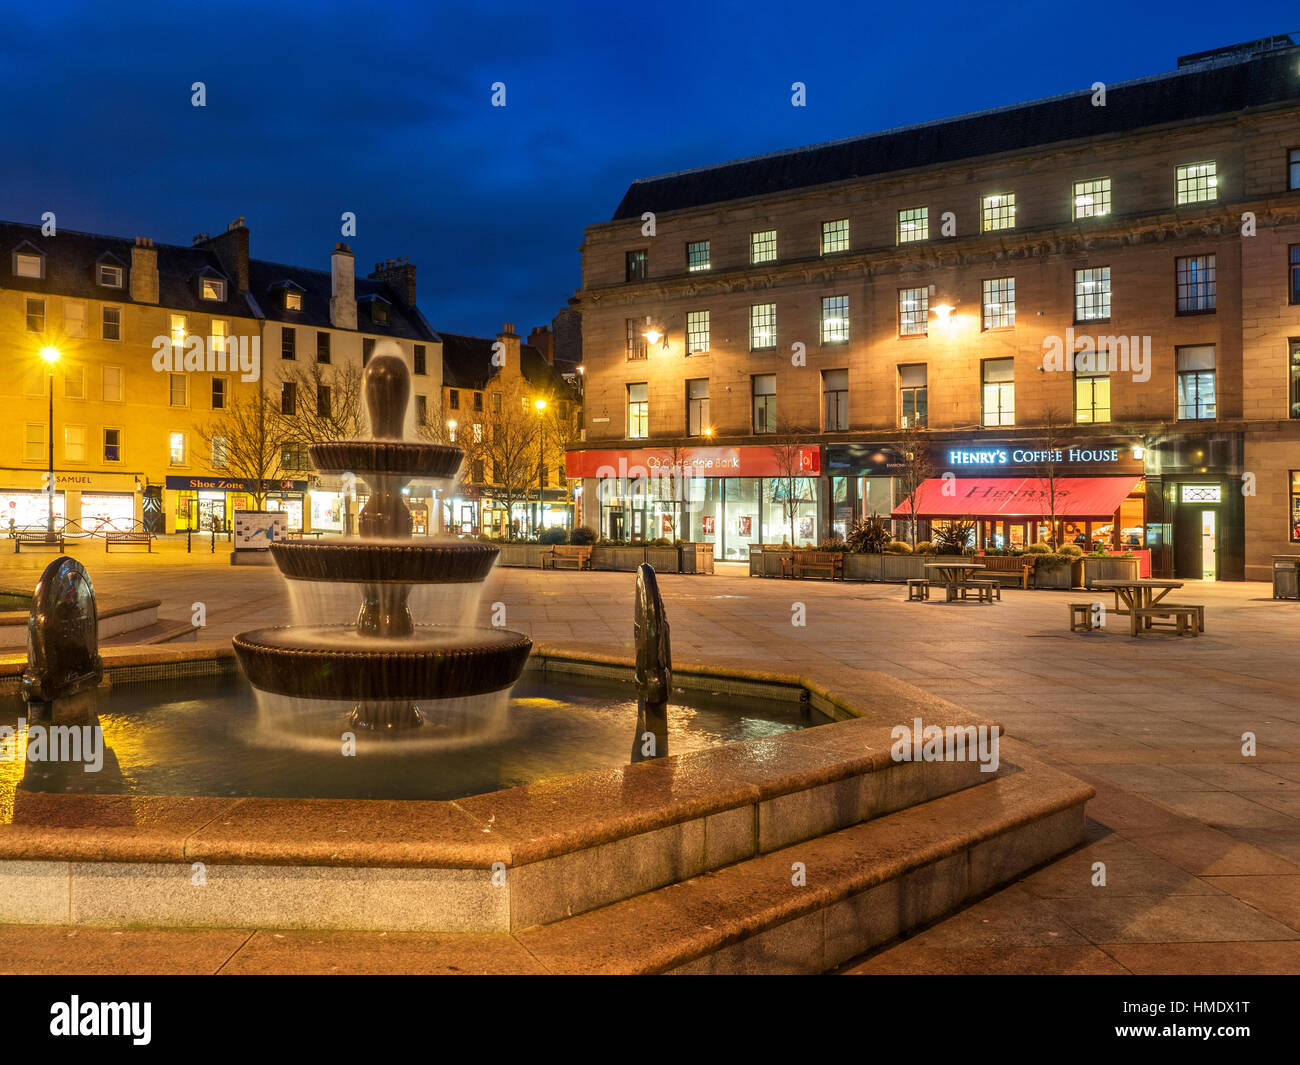 Fountain in City Square at Dusk Dundee Scotland - Stock Image